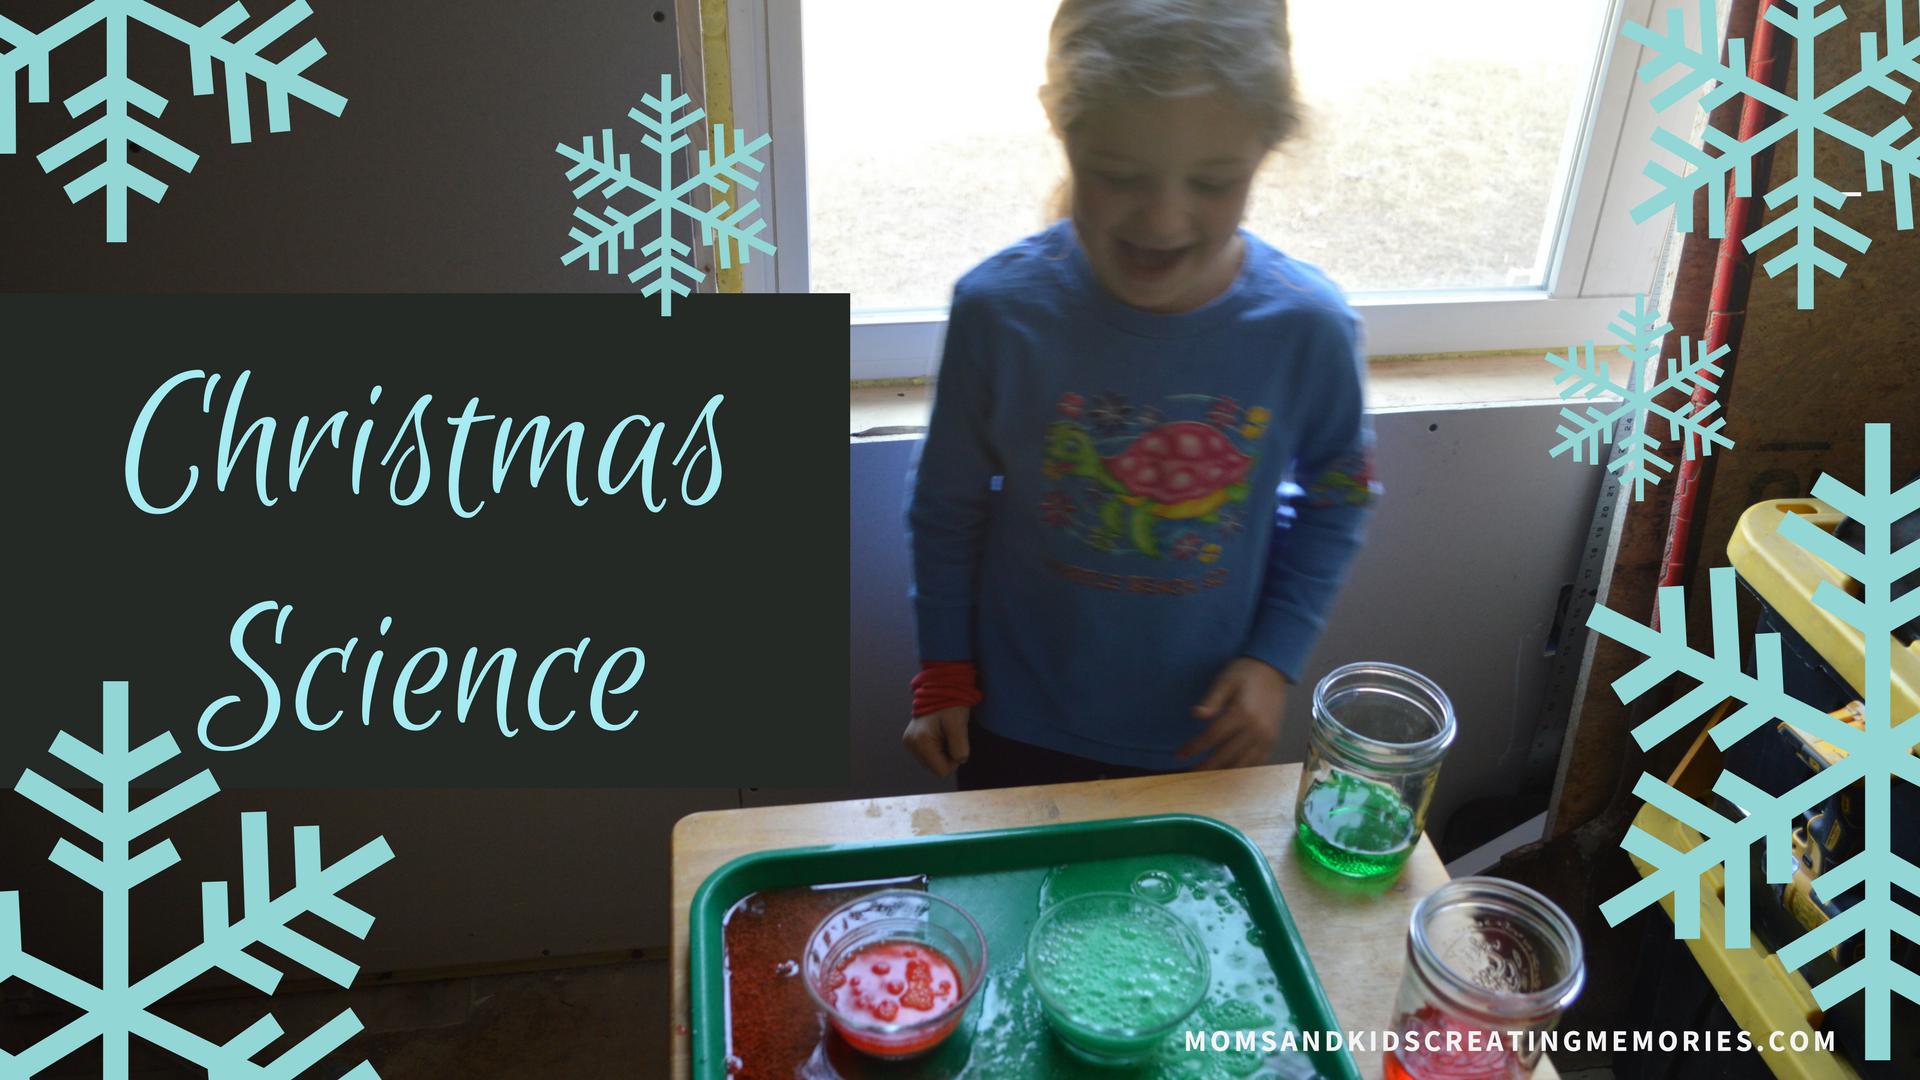 Christmas Science Fun! Do this fun activity with your kids with a Christmas twist and they can learn about chemical reactions and color mixing and having fun. Try this out with your kids this Christmas!